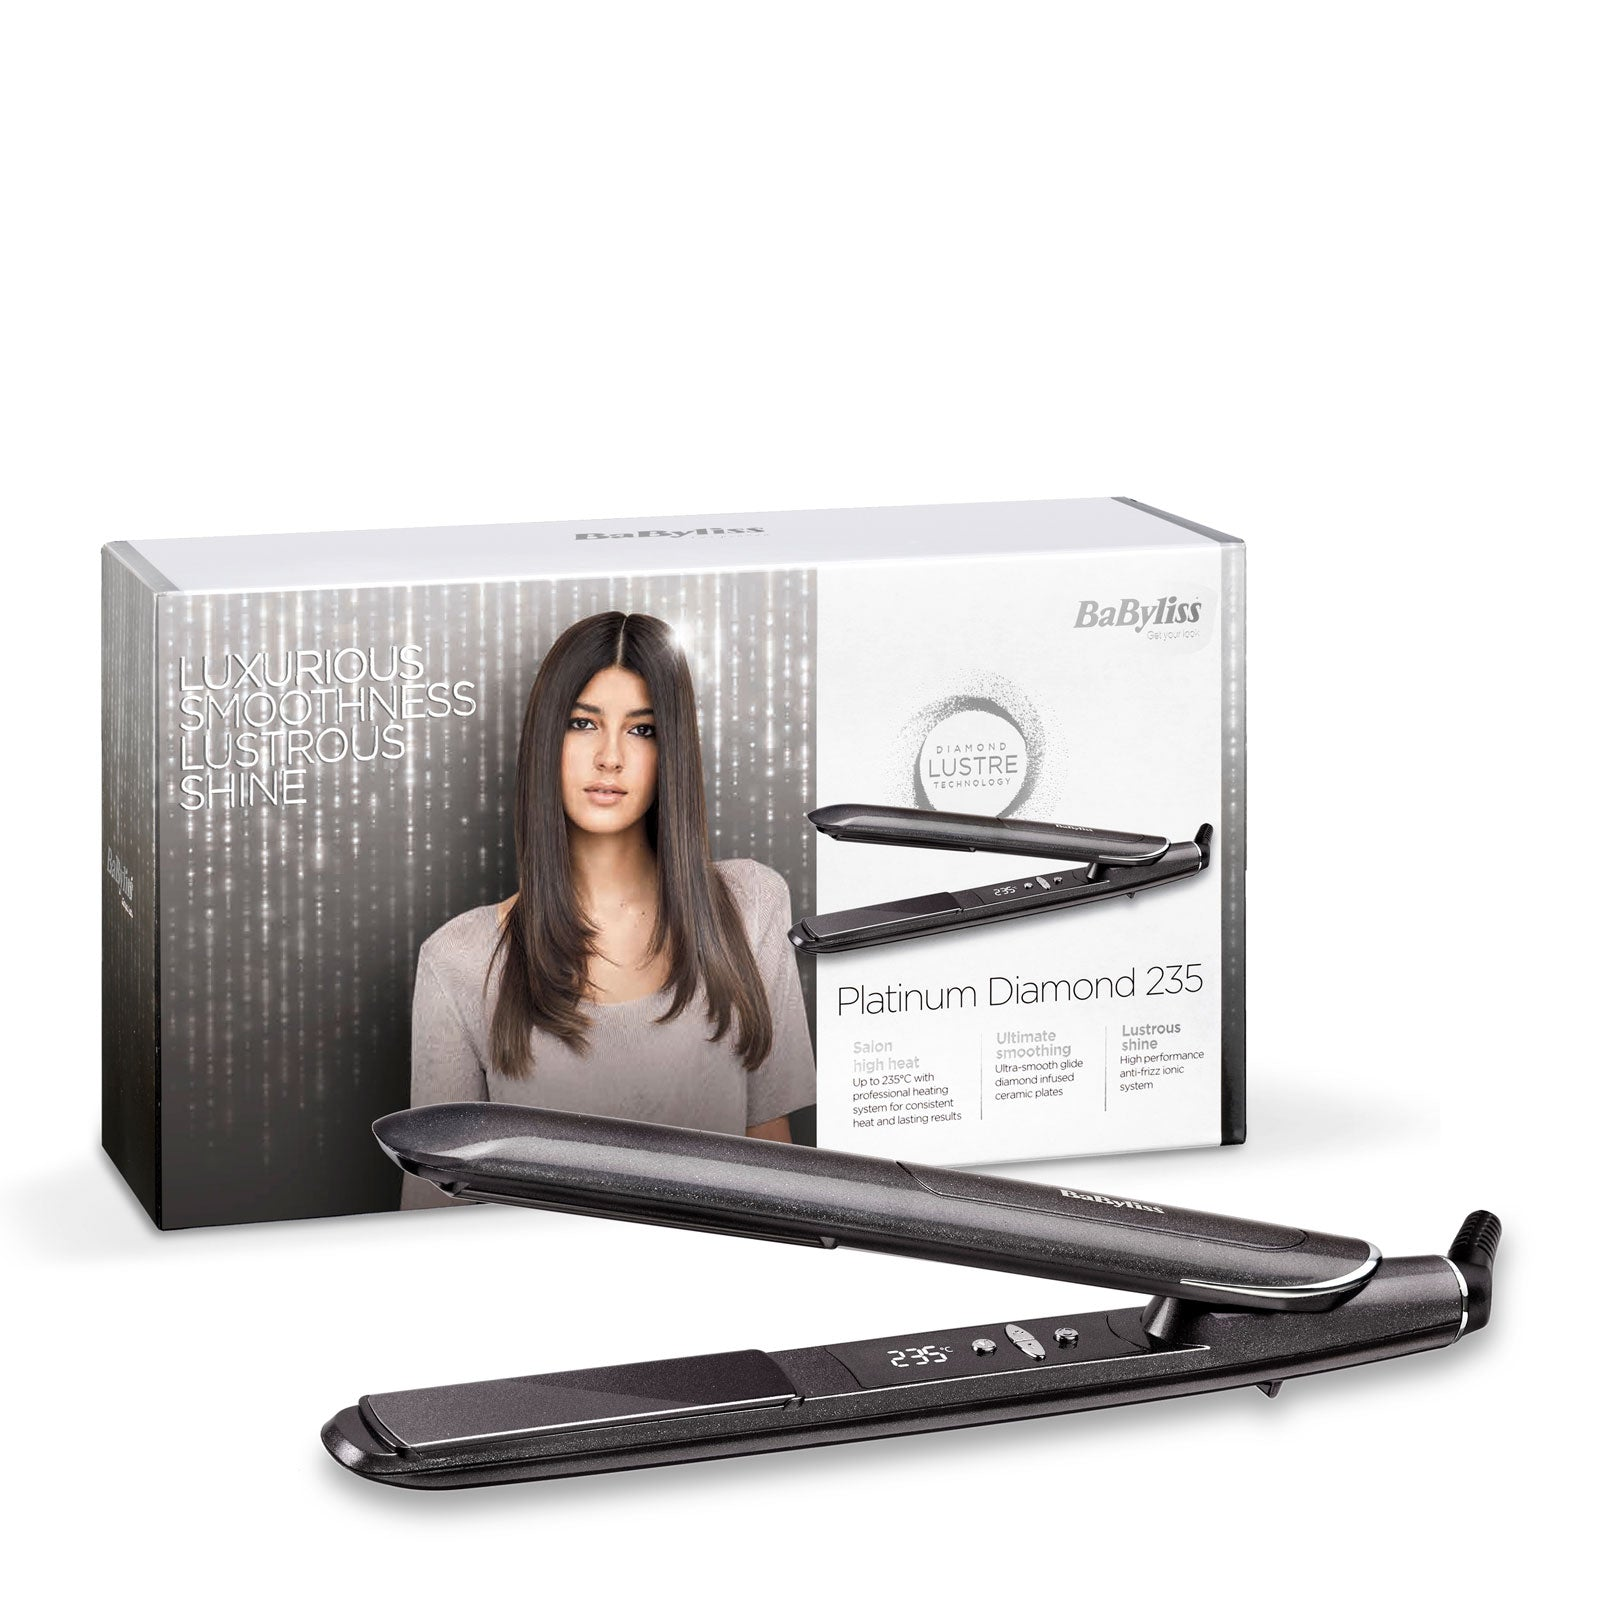 BaByliss Platinum Diamond 235 Straightener